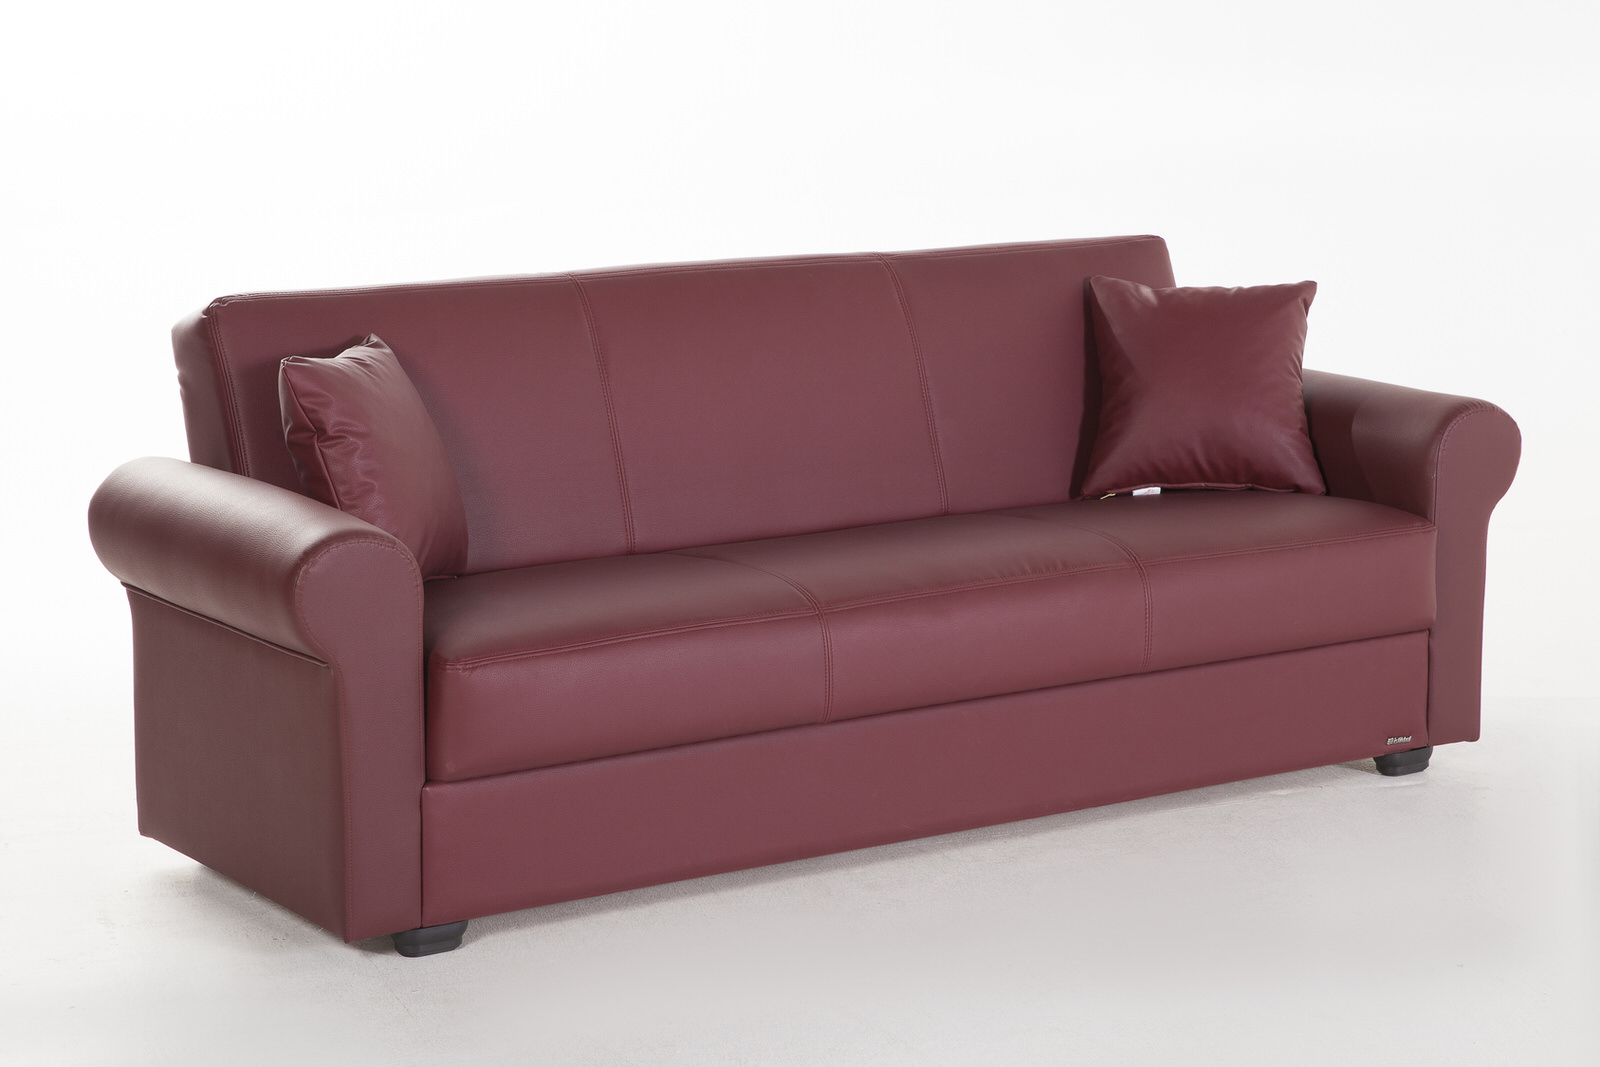 Floris santa glory burgundy convertible sofa bed by sunset for Divan convertible